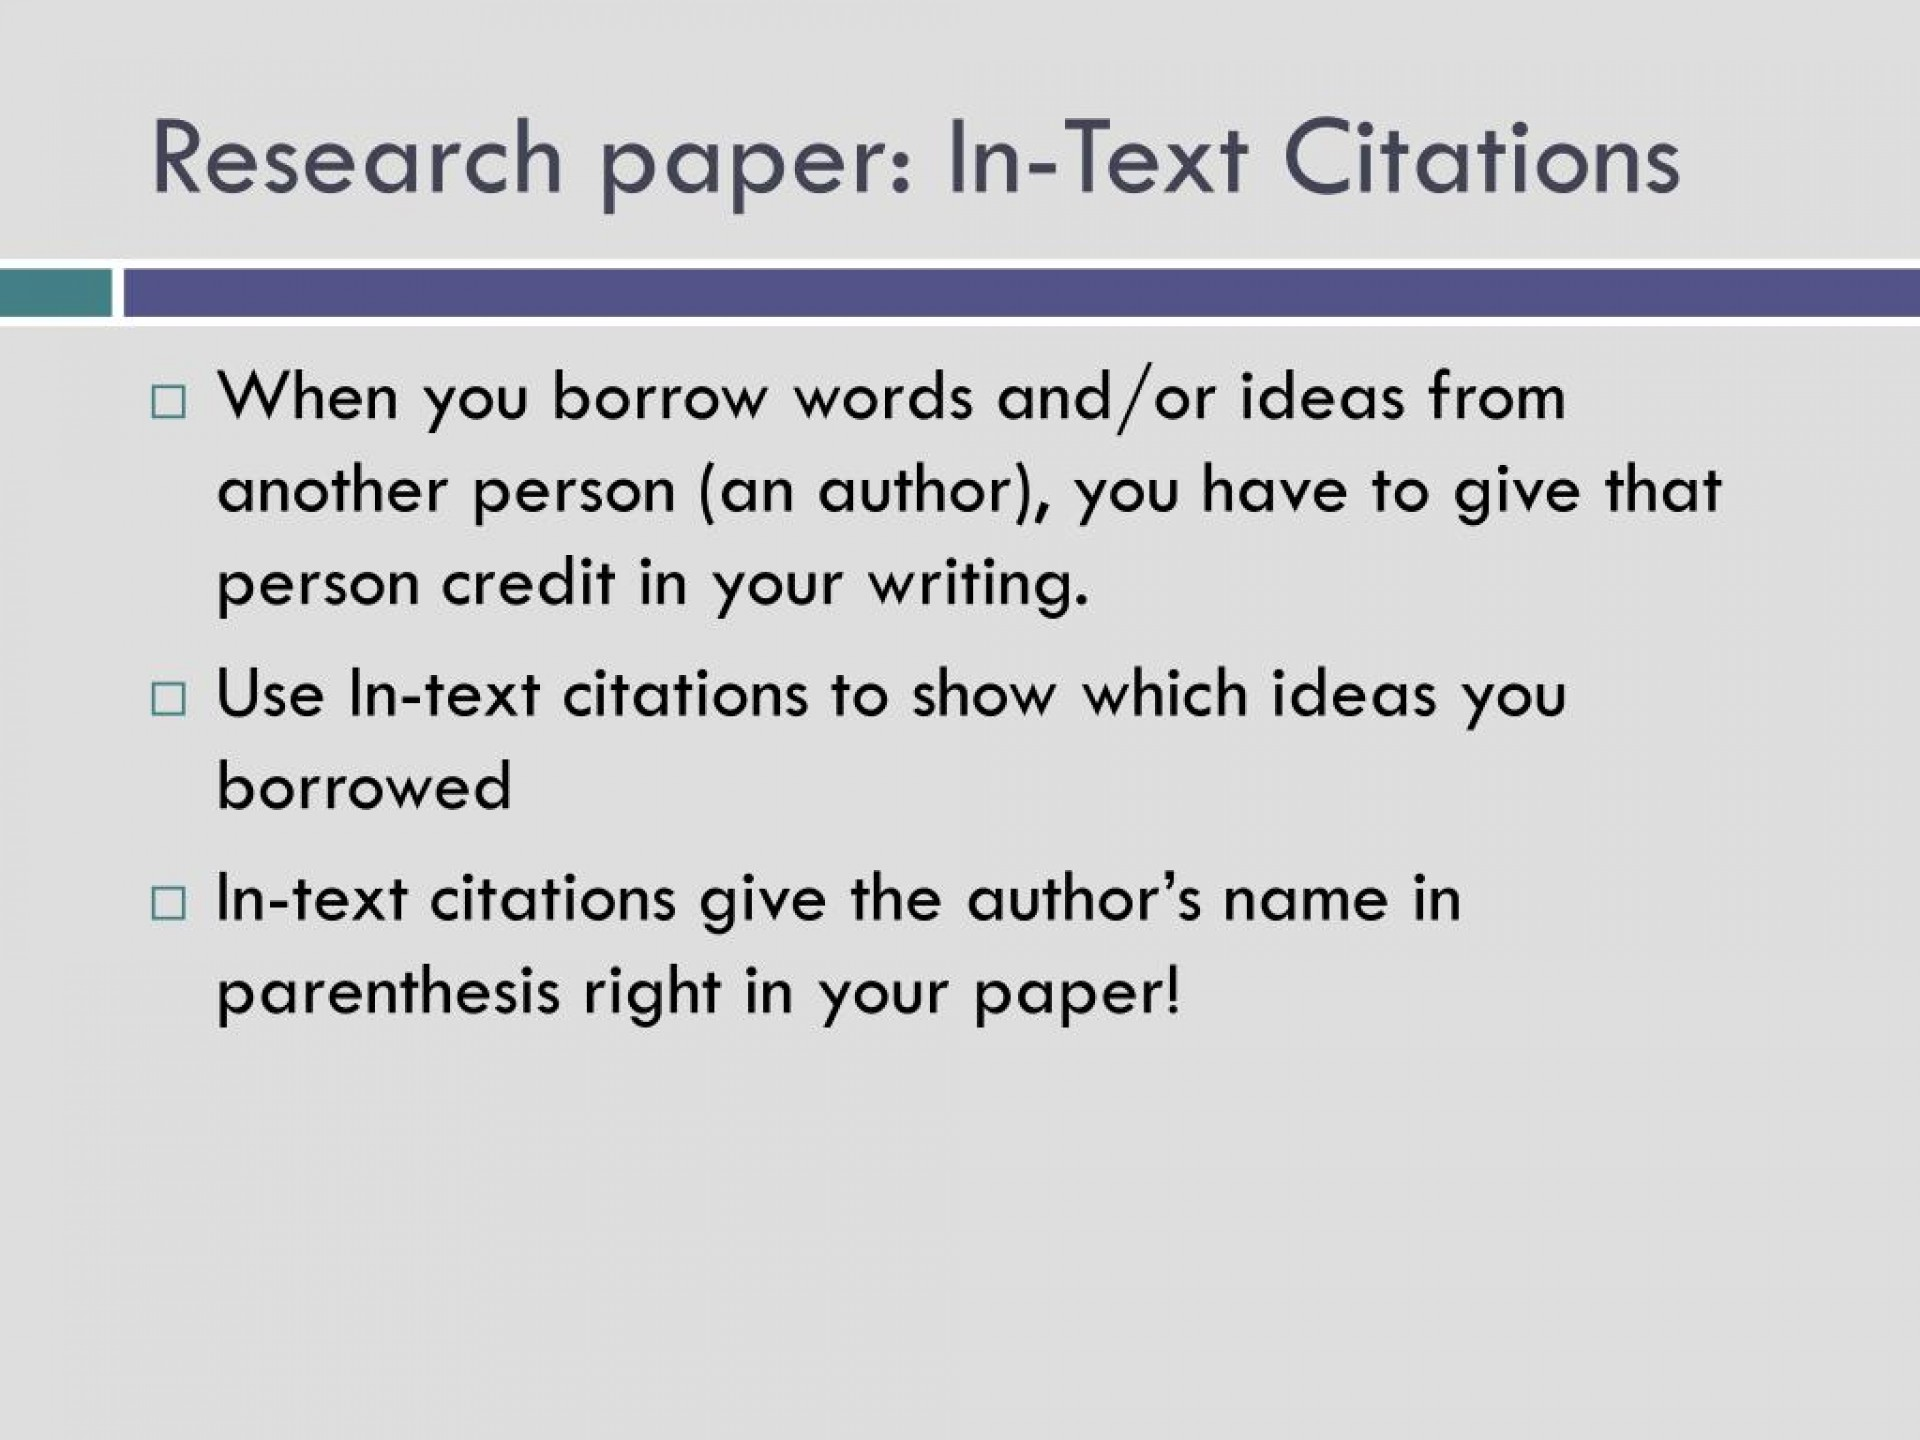 001 How To Write References In Research Paper Ppt Text Citations Awful 1920